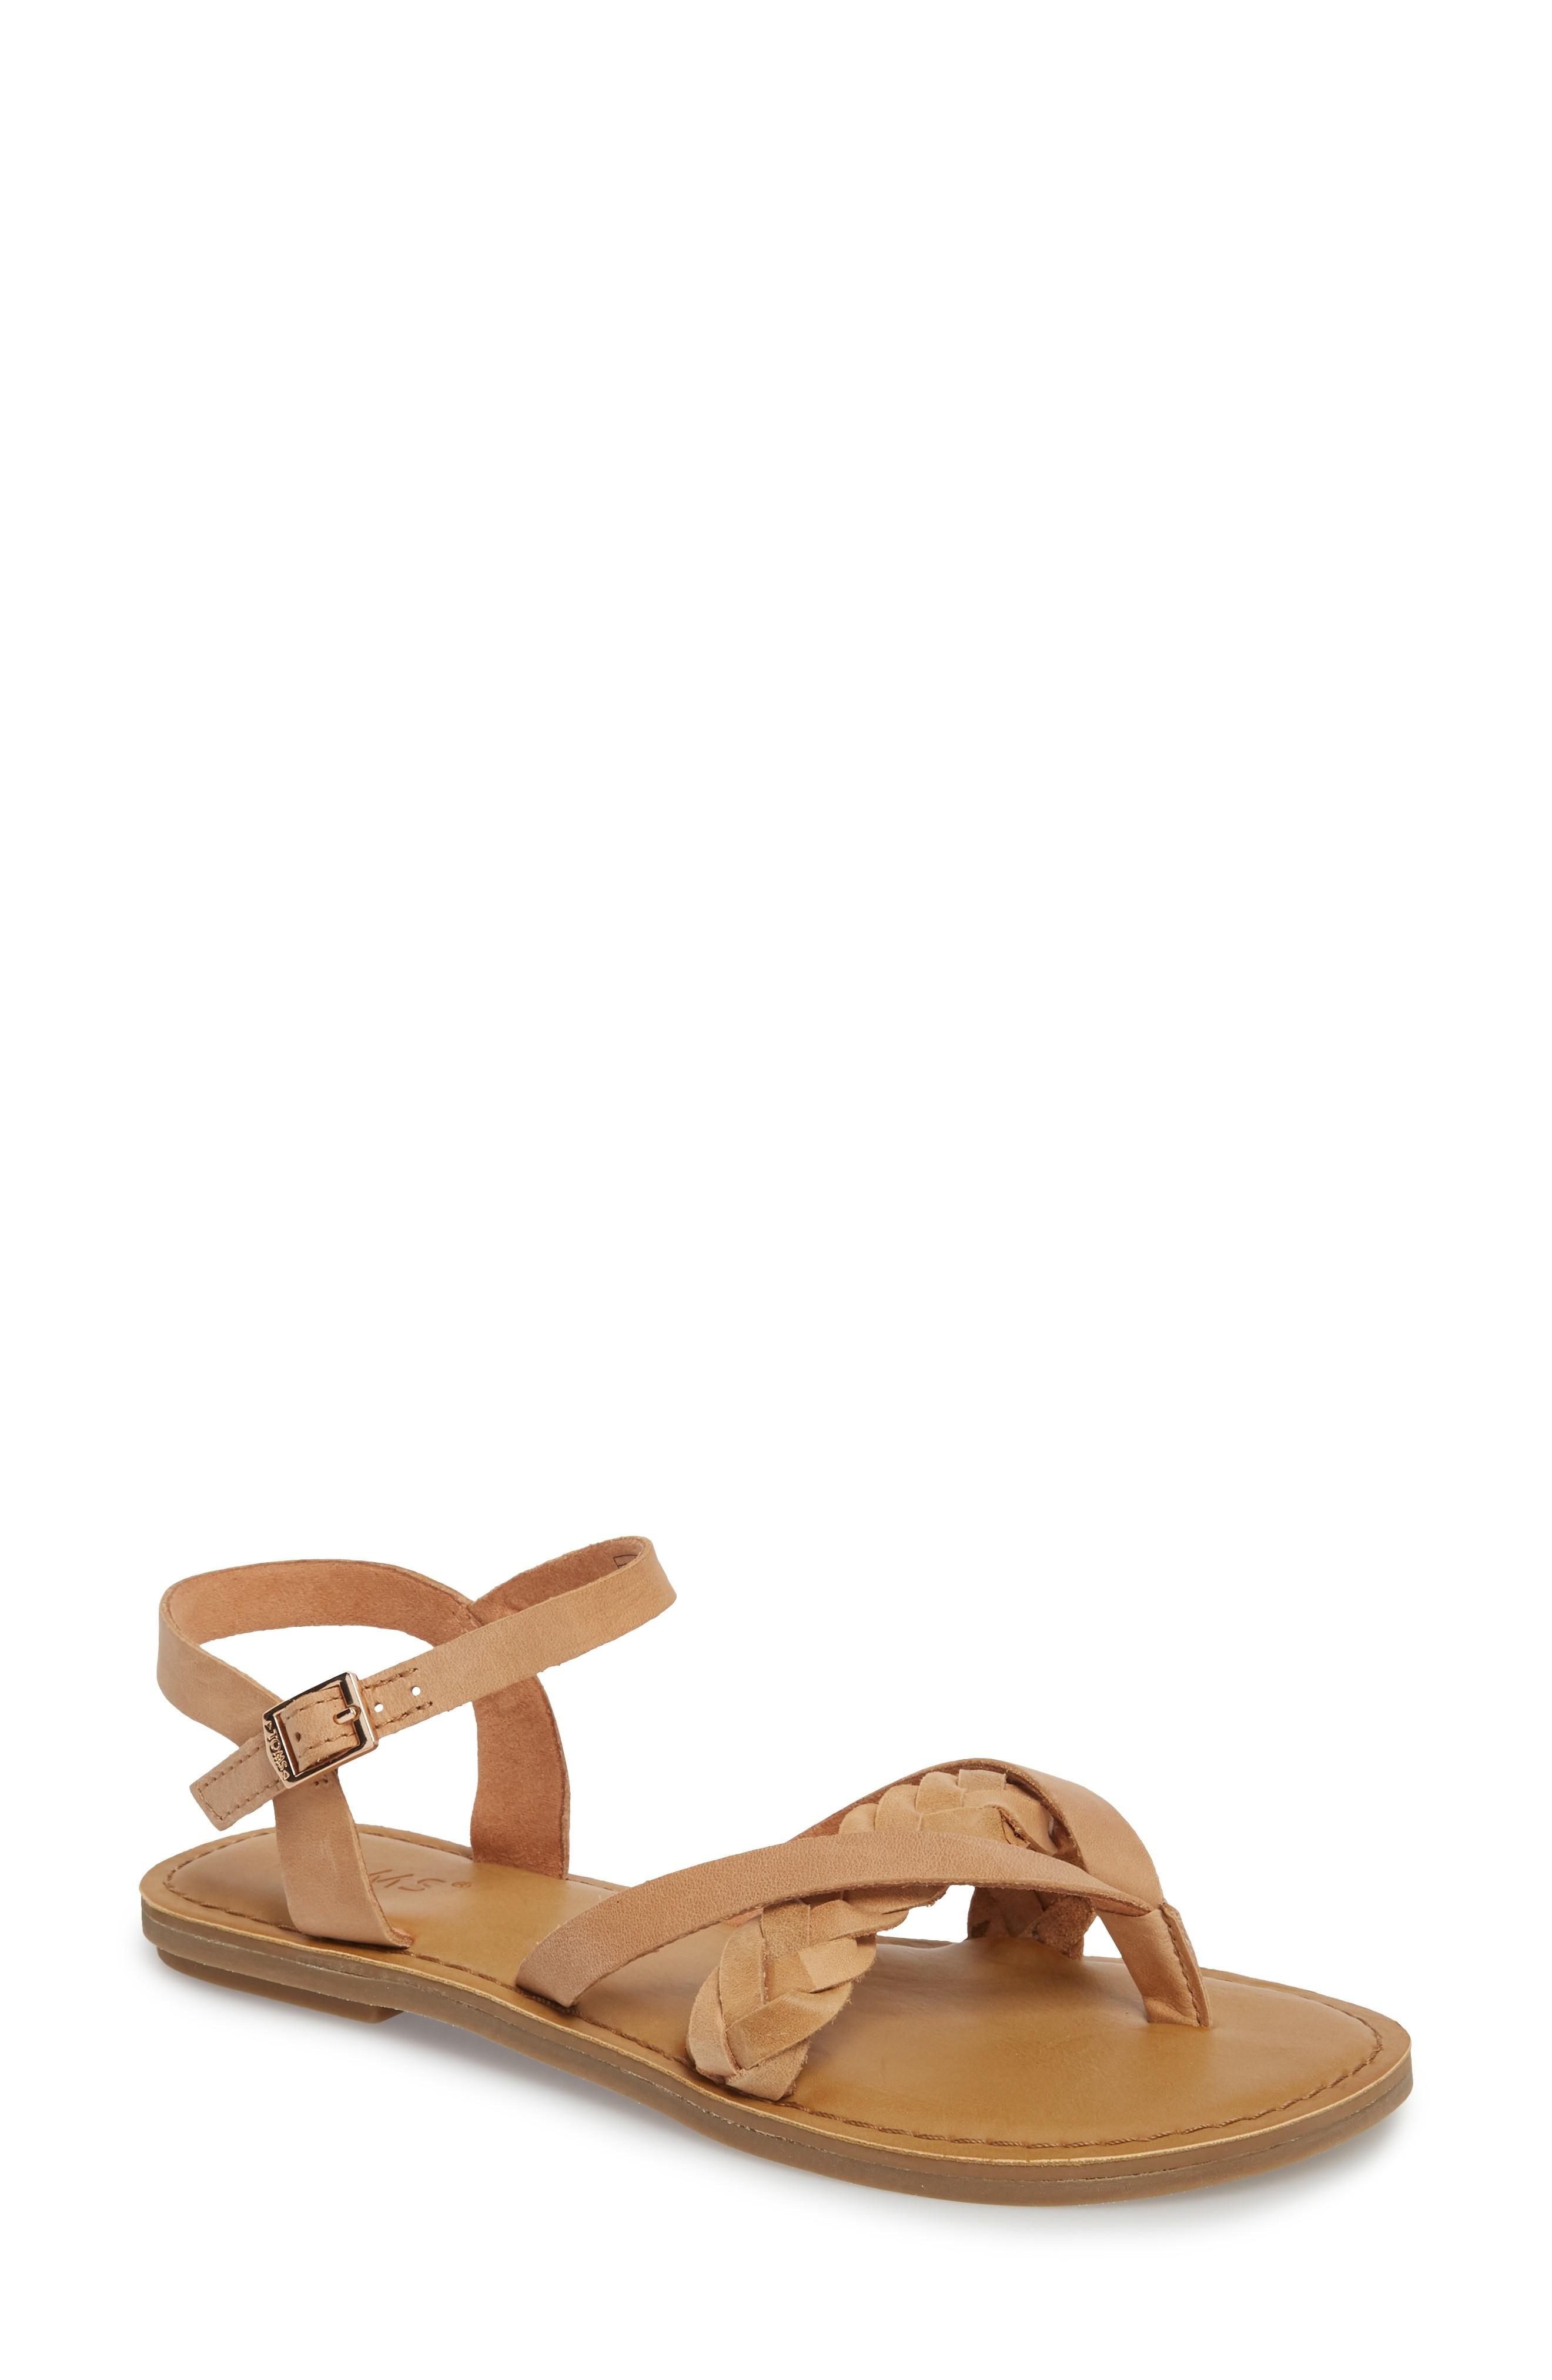 52dc121985f A cushy footbed brings comfort to a chic summer sandal accented with a fun